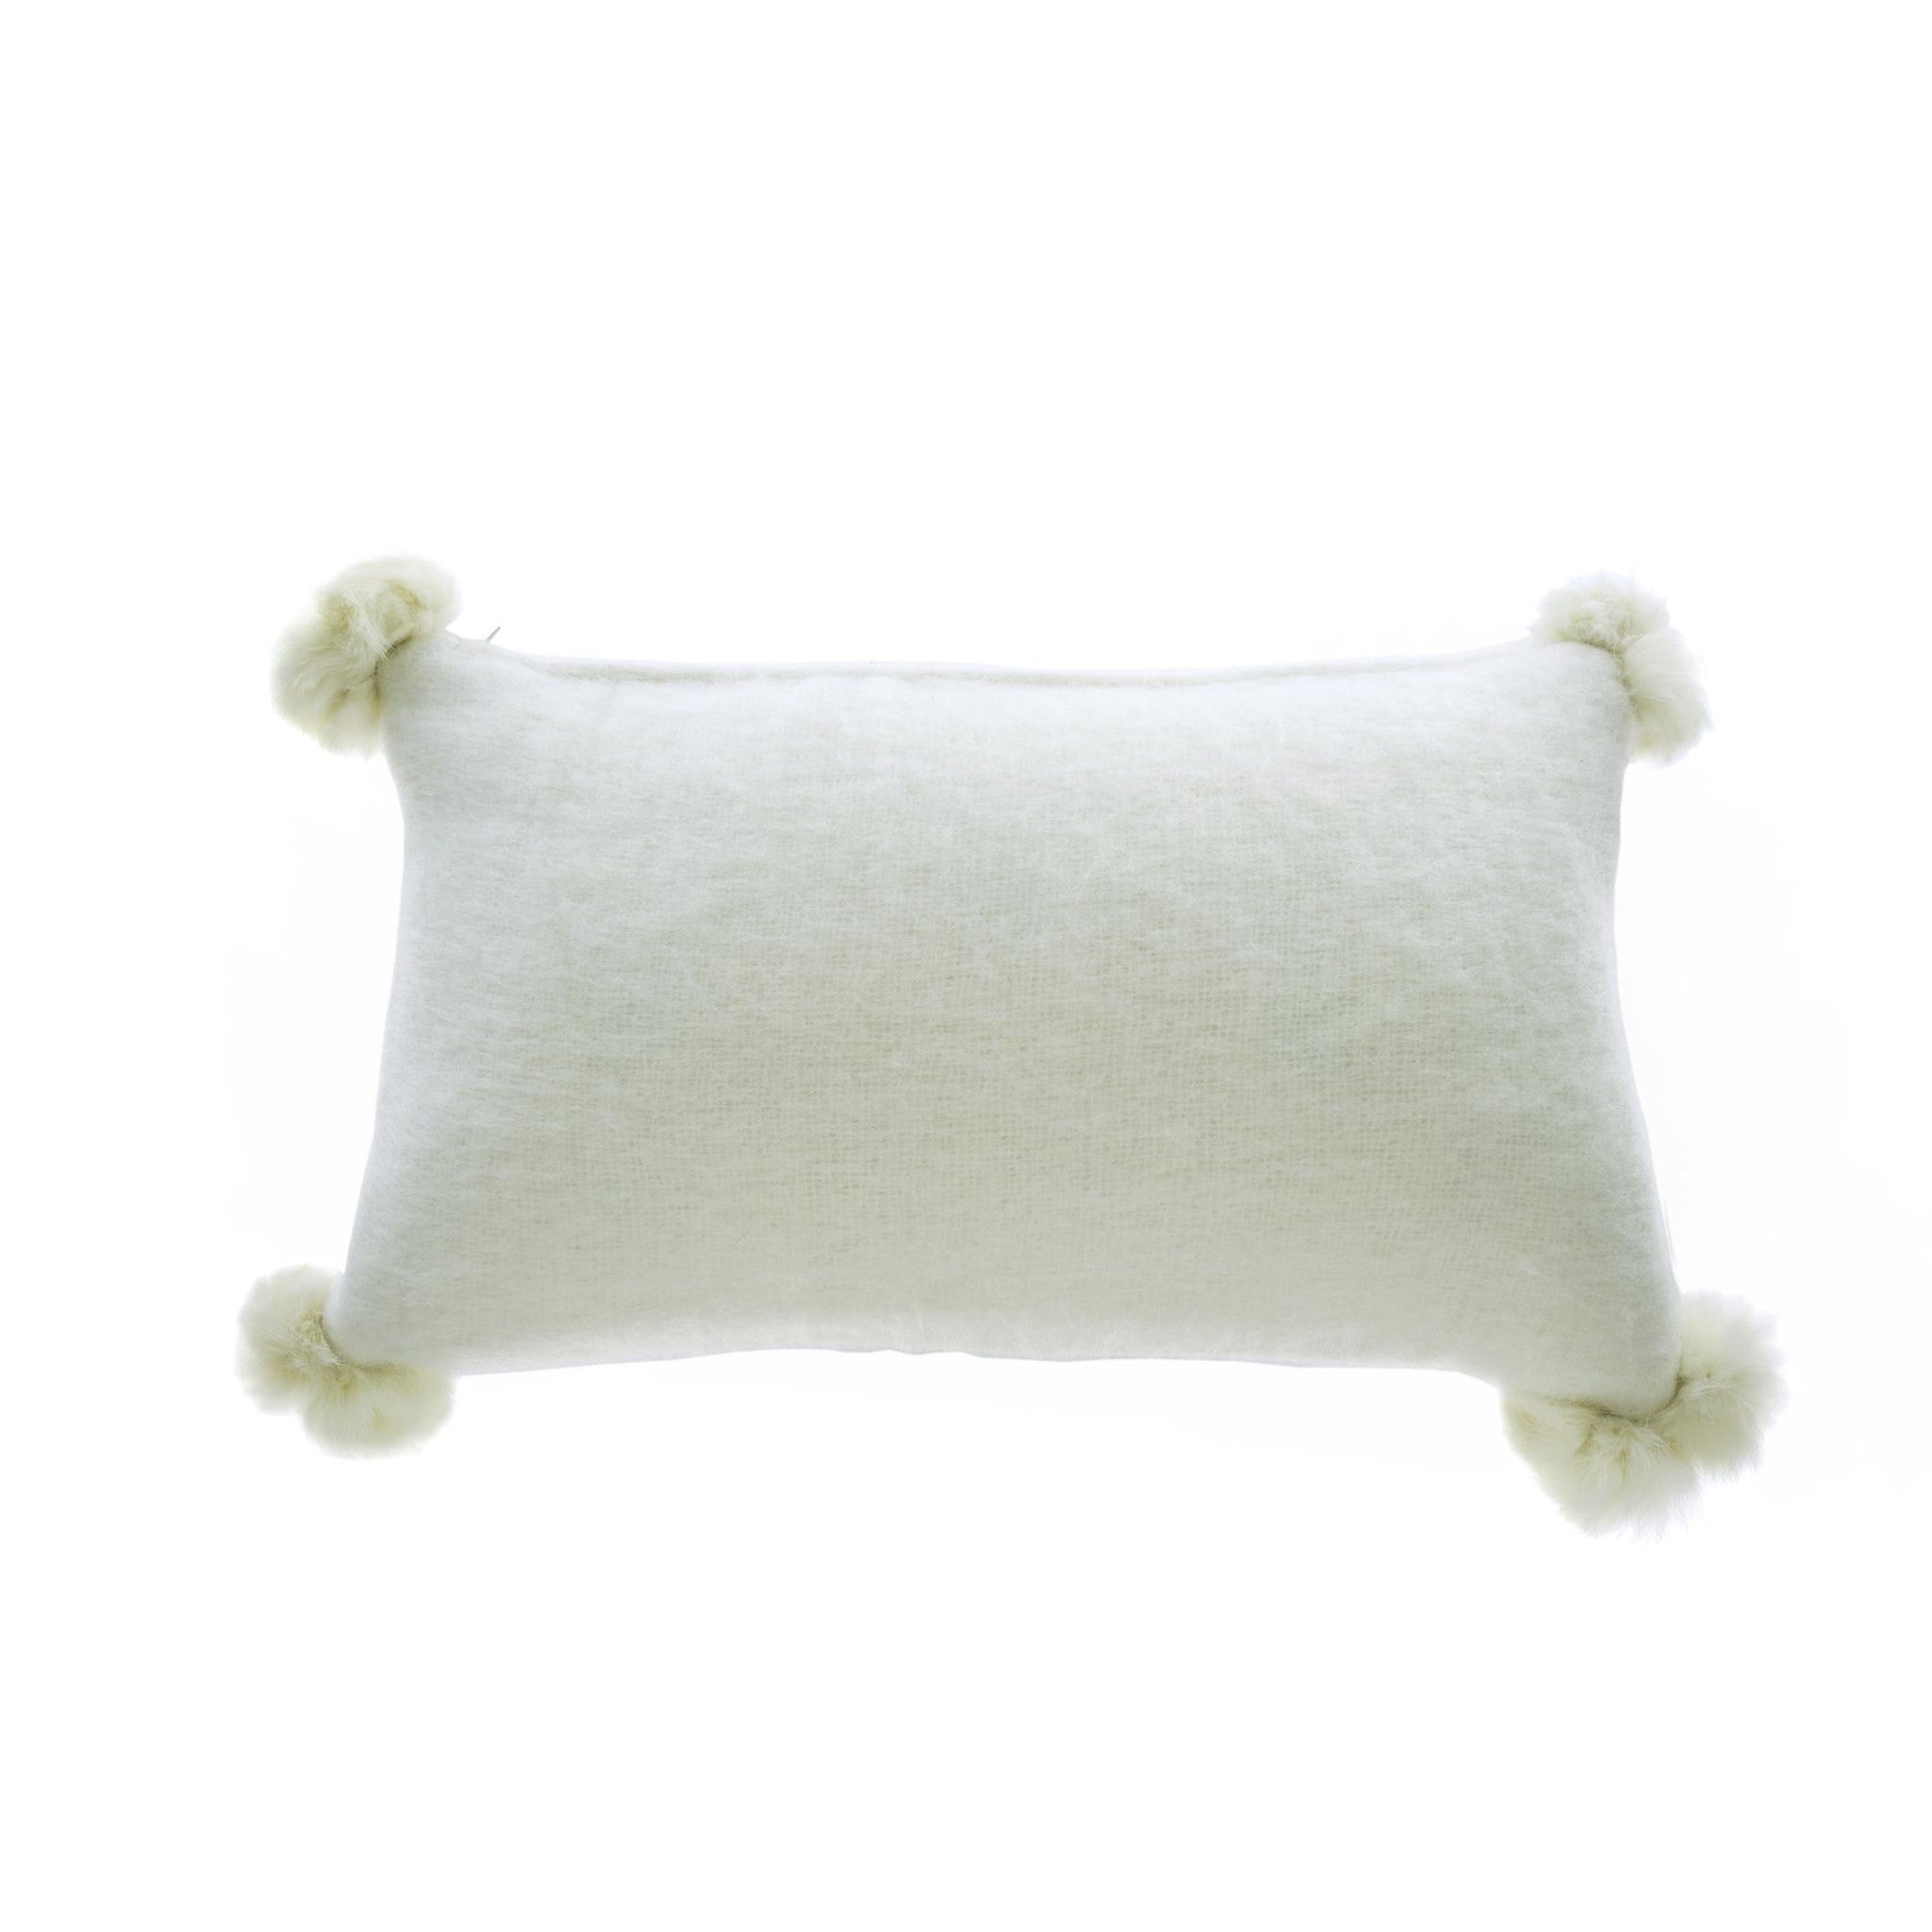 Mohair Cushion with Fur Pom Poms - White, IT-Indaba Trading, Putti Fine Furnishings